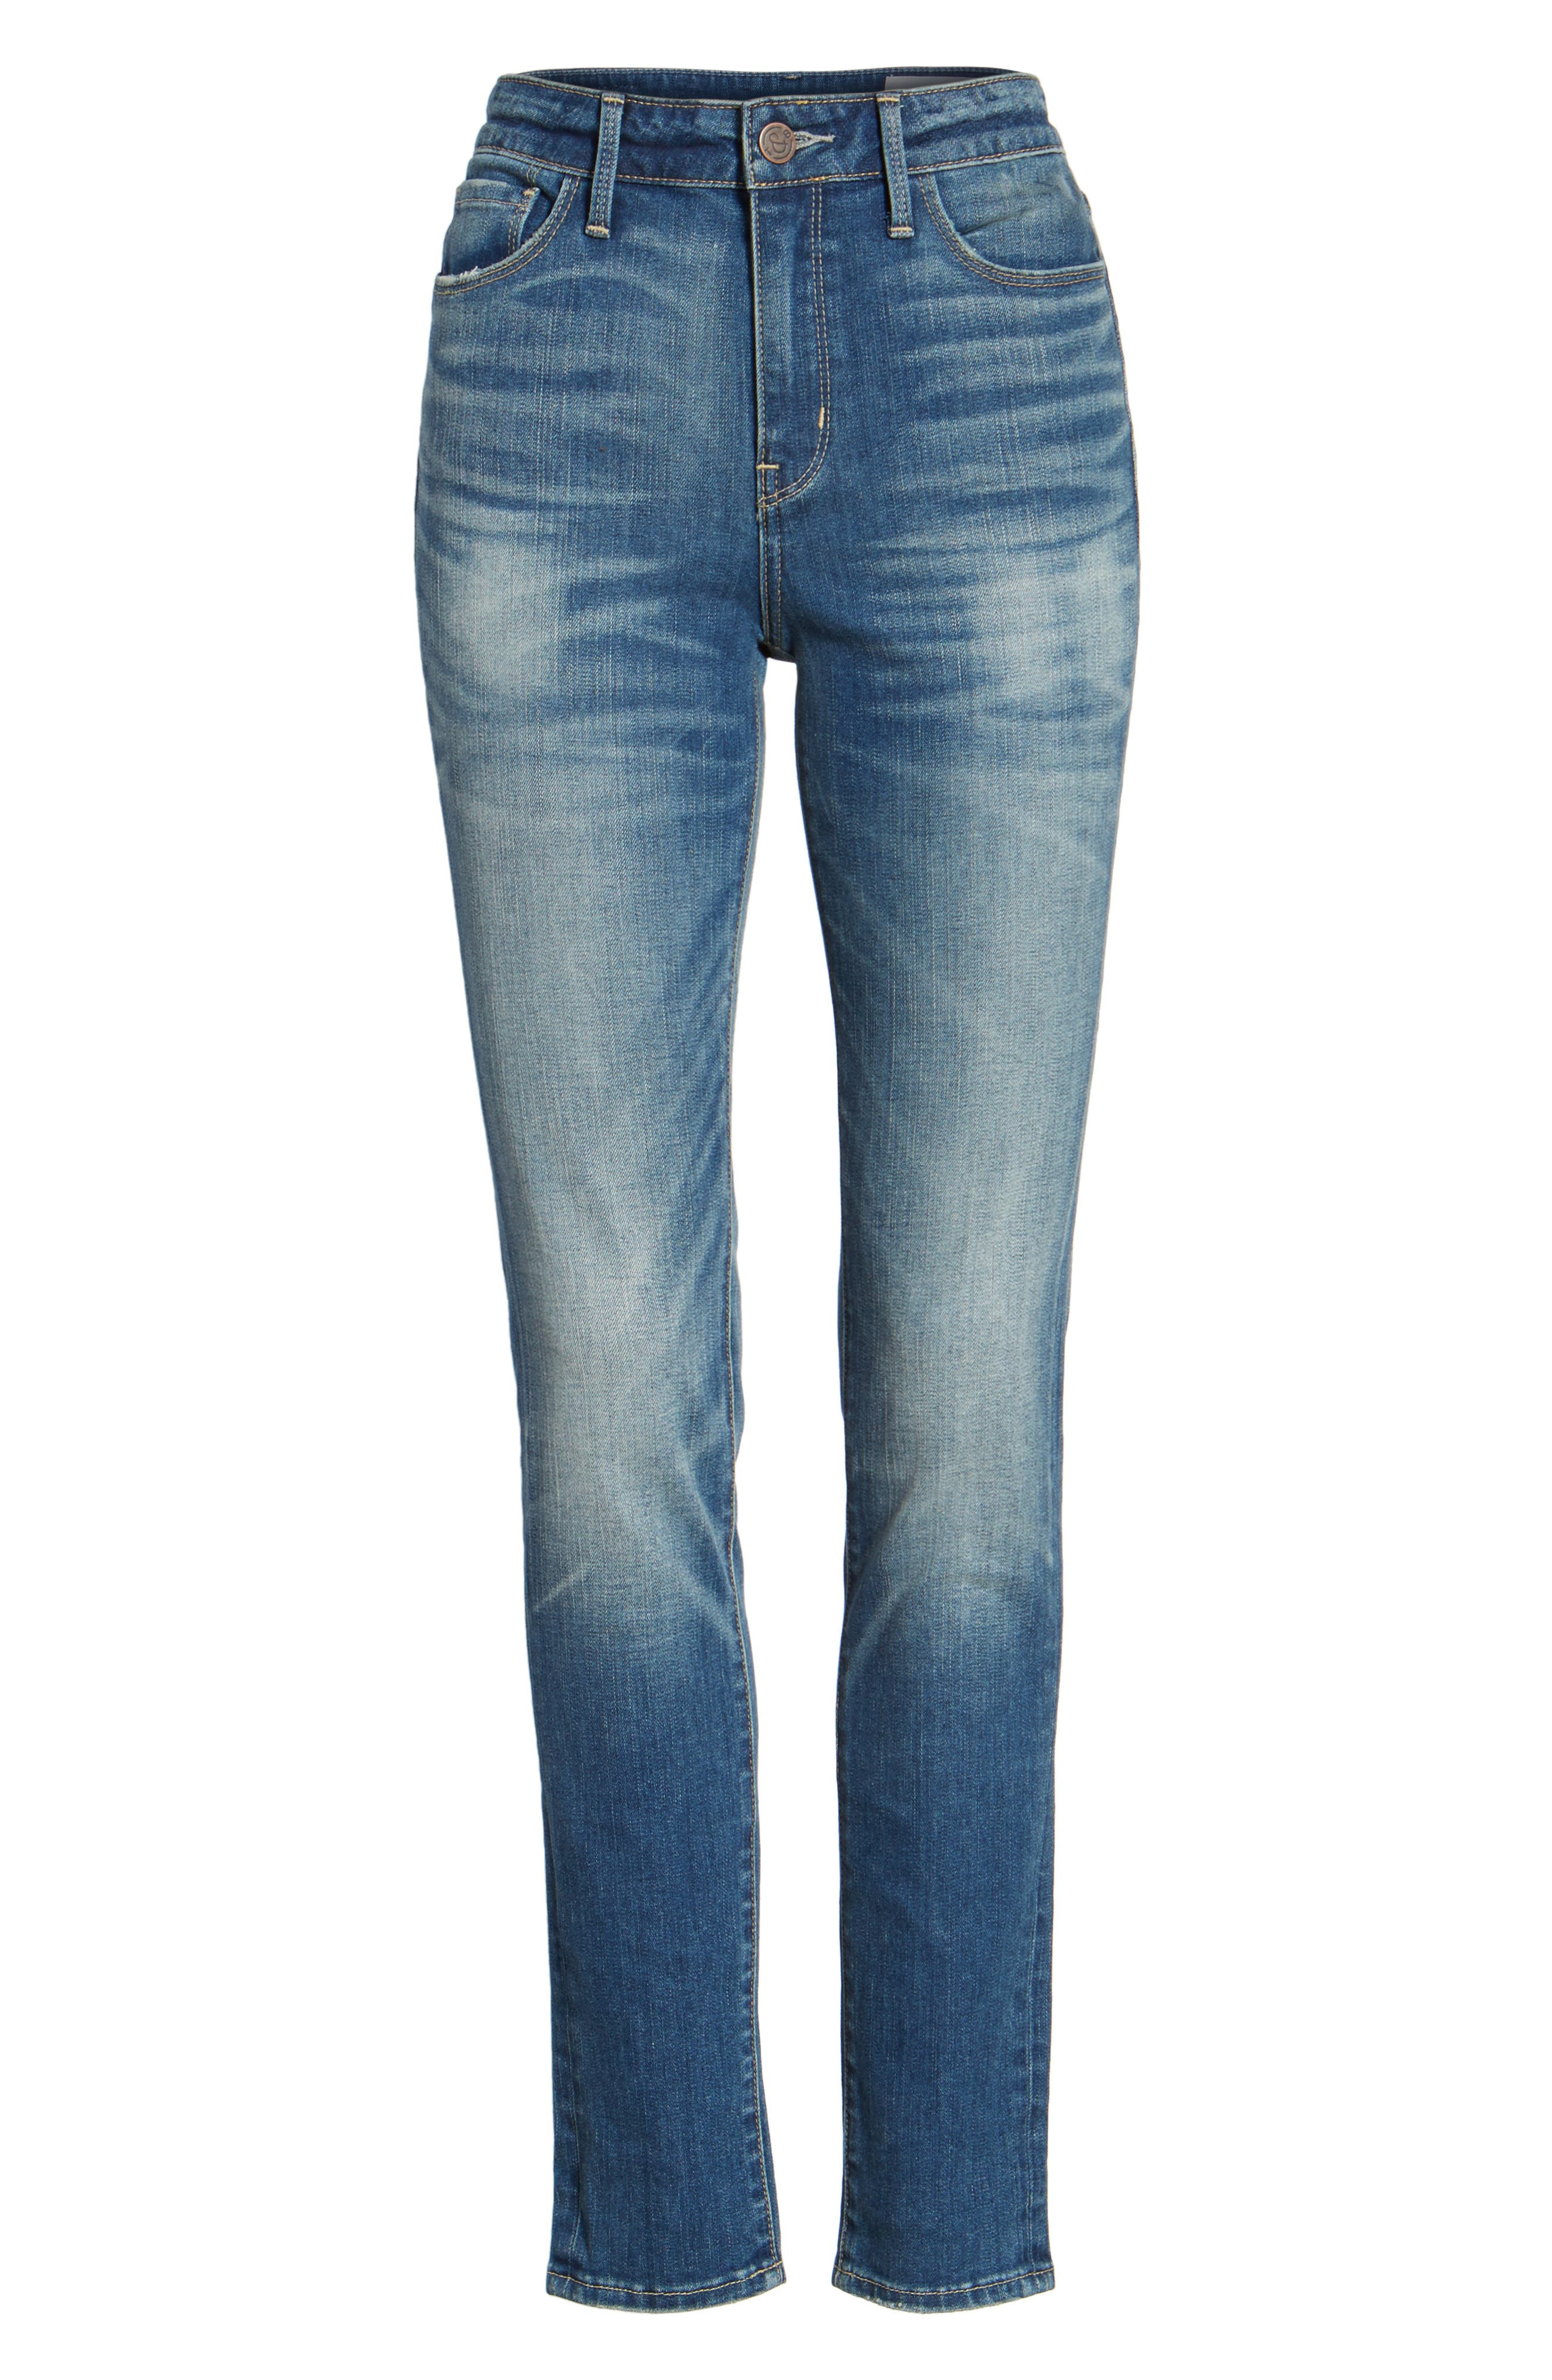 High Waist Skinny Jeans,                             Alternate thumbnail 7, color,                             400